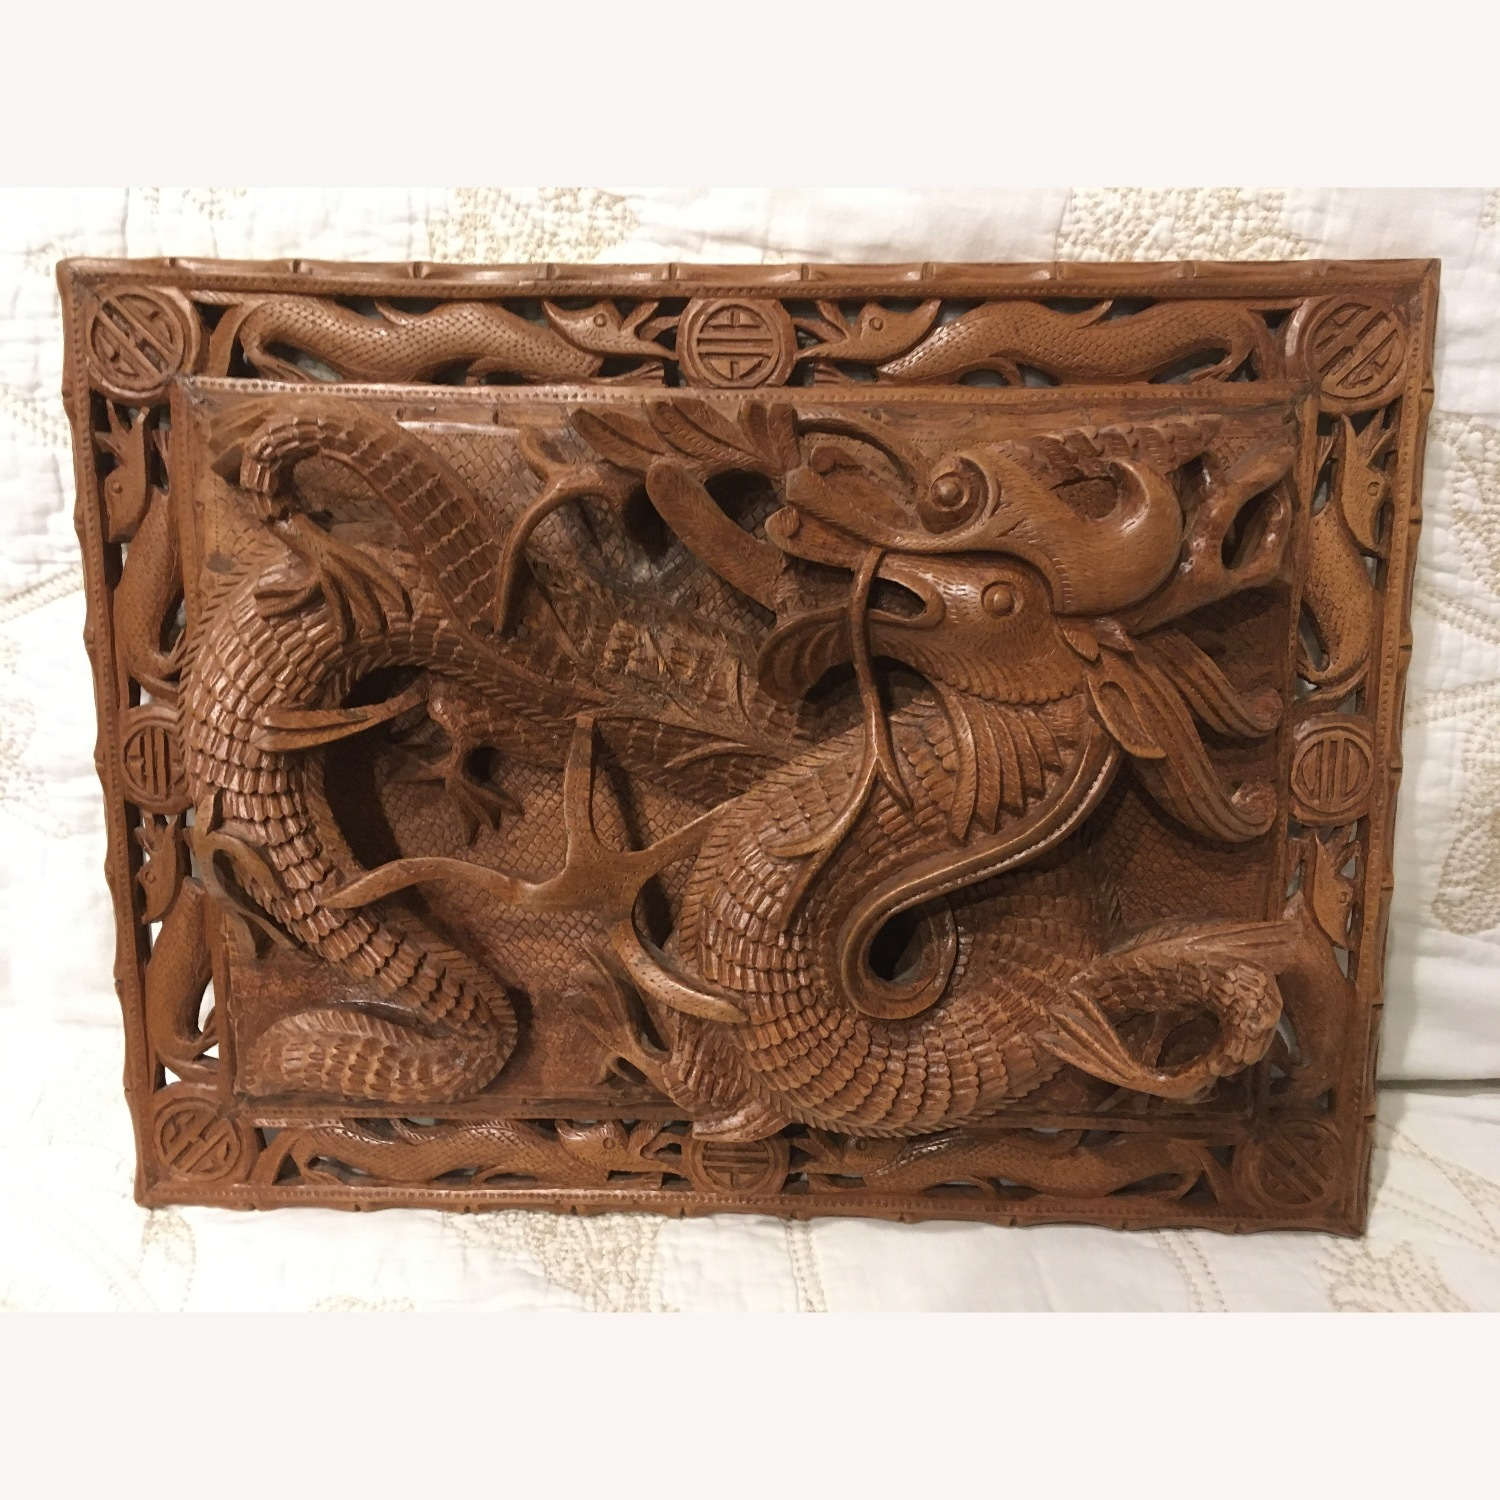 Original Woodcraft Panels with Dragons from India - image-1